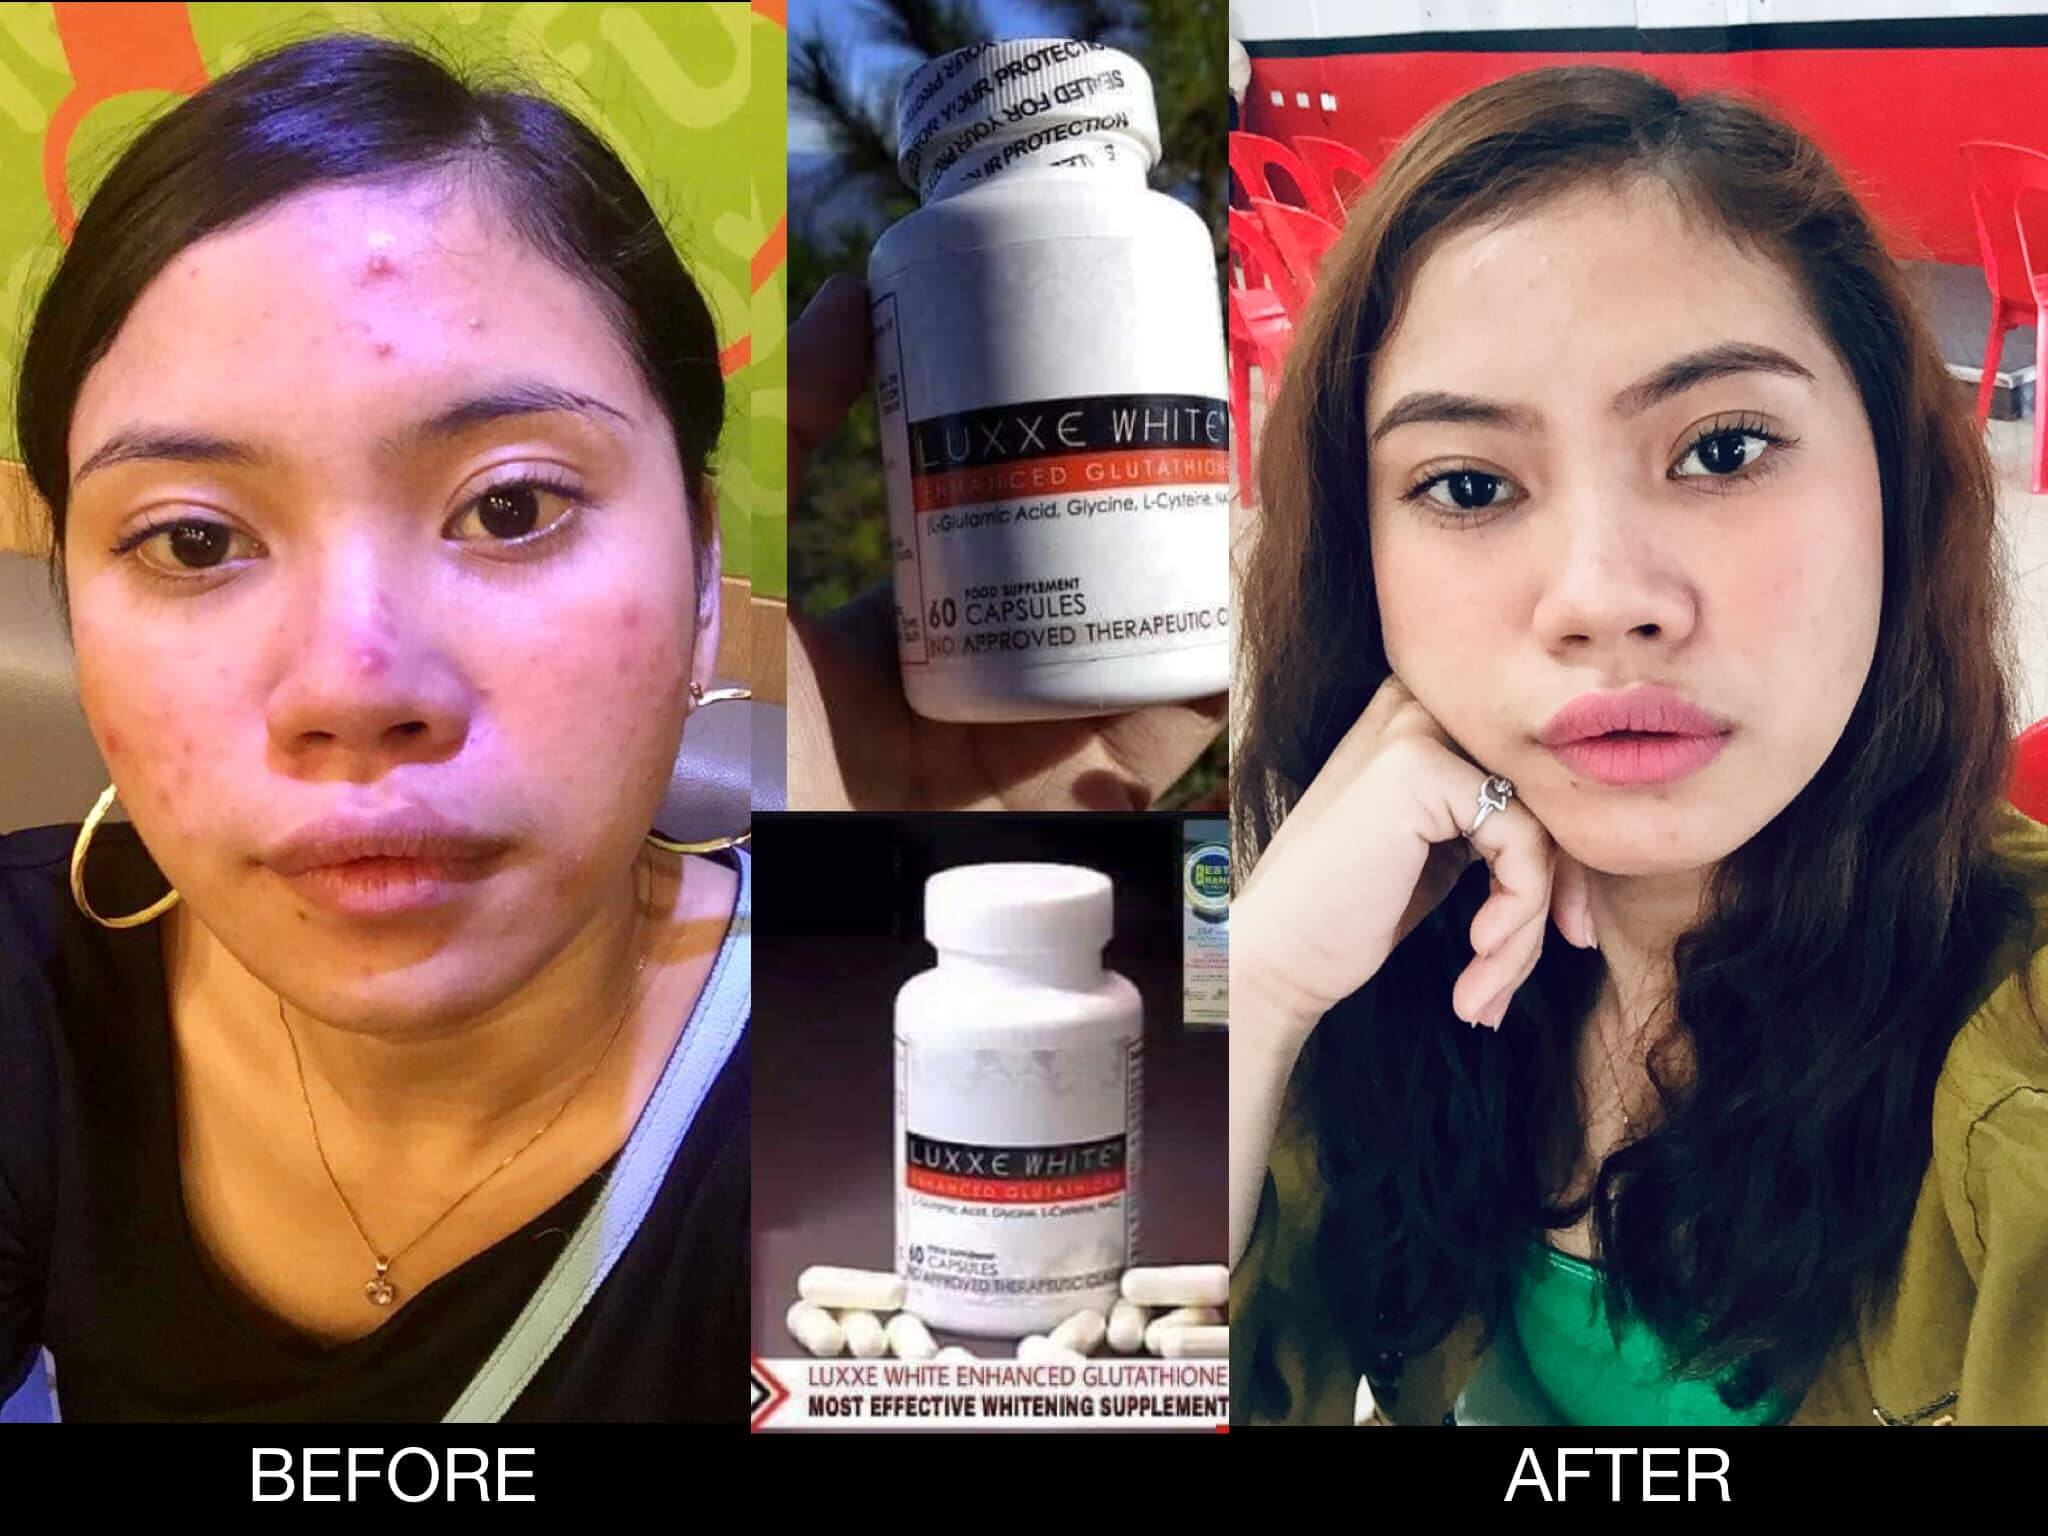 Luxxe White and Luxxe Protect Testimony by Marie Nila Englis Serada